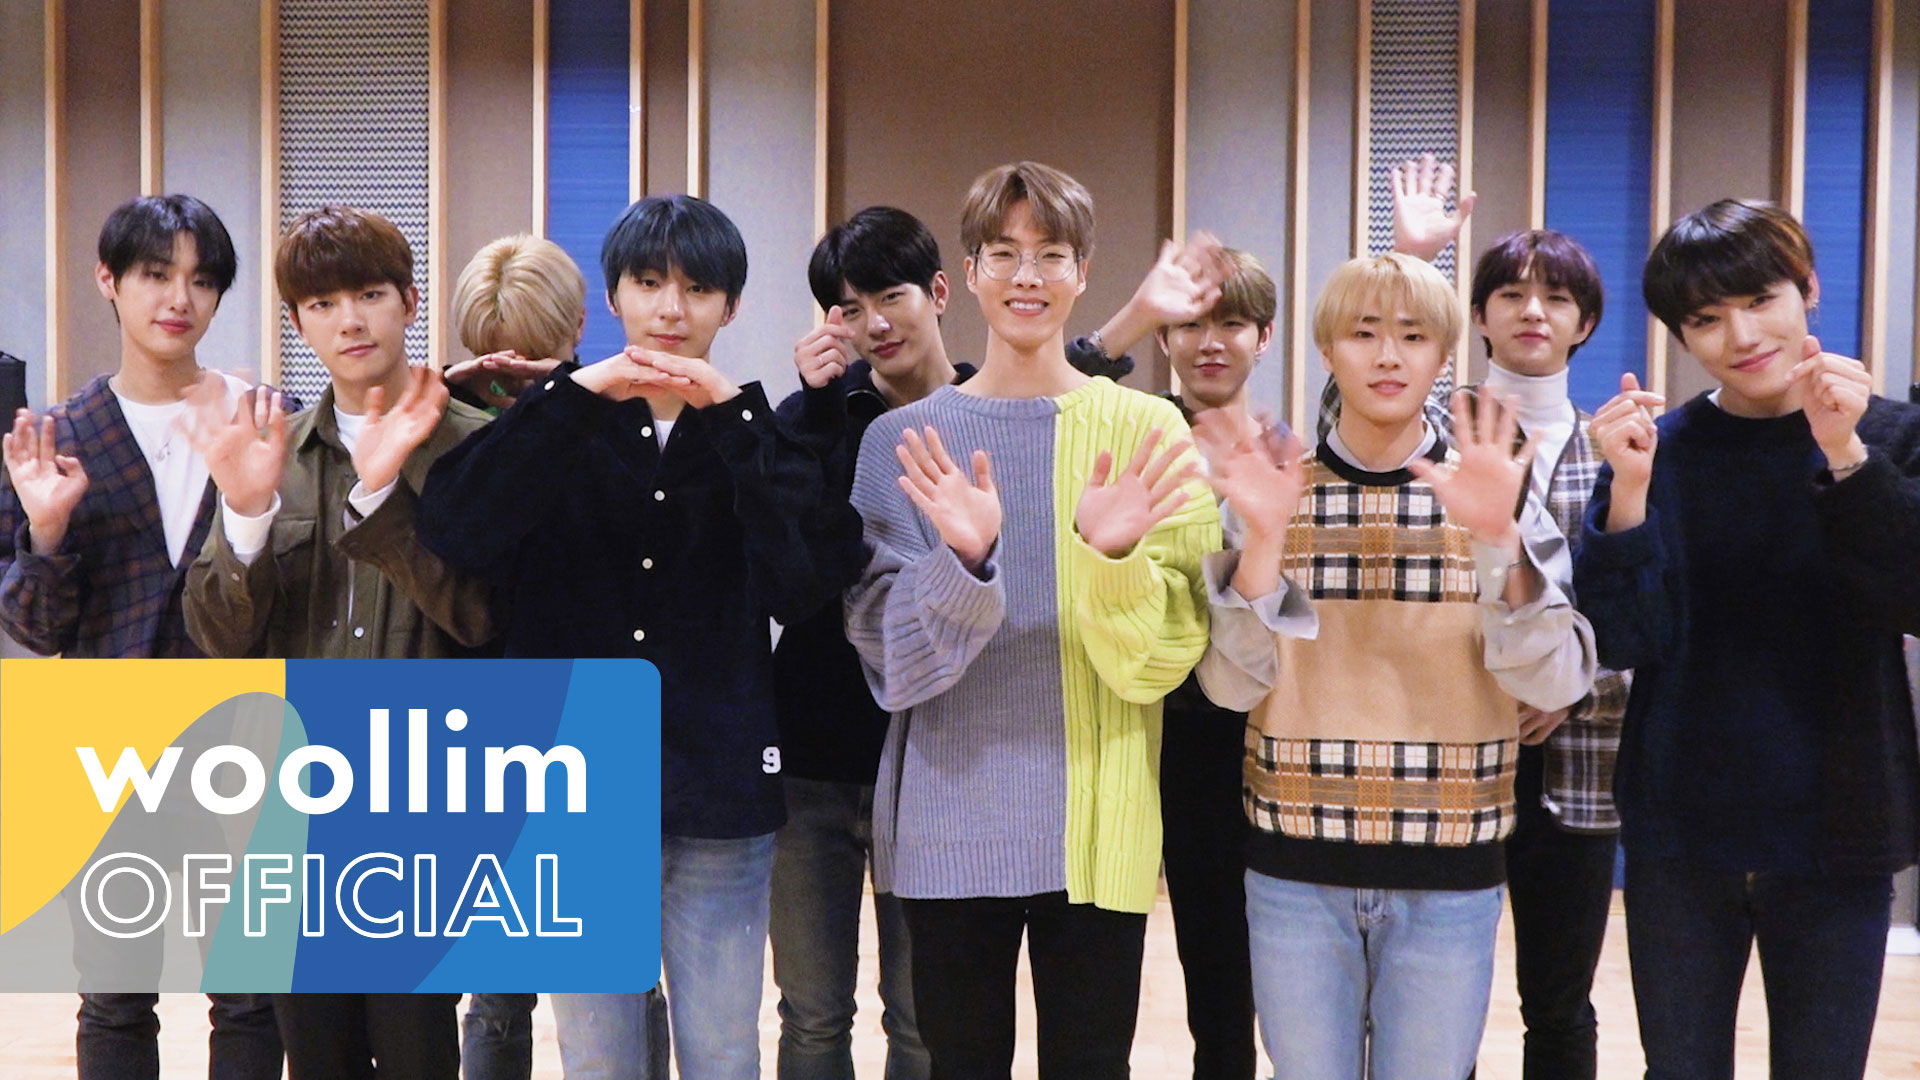 골든차일드(Golden Child) 2020 설 인사 (Lunar New Year Greetings Message)